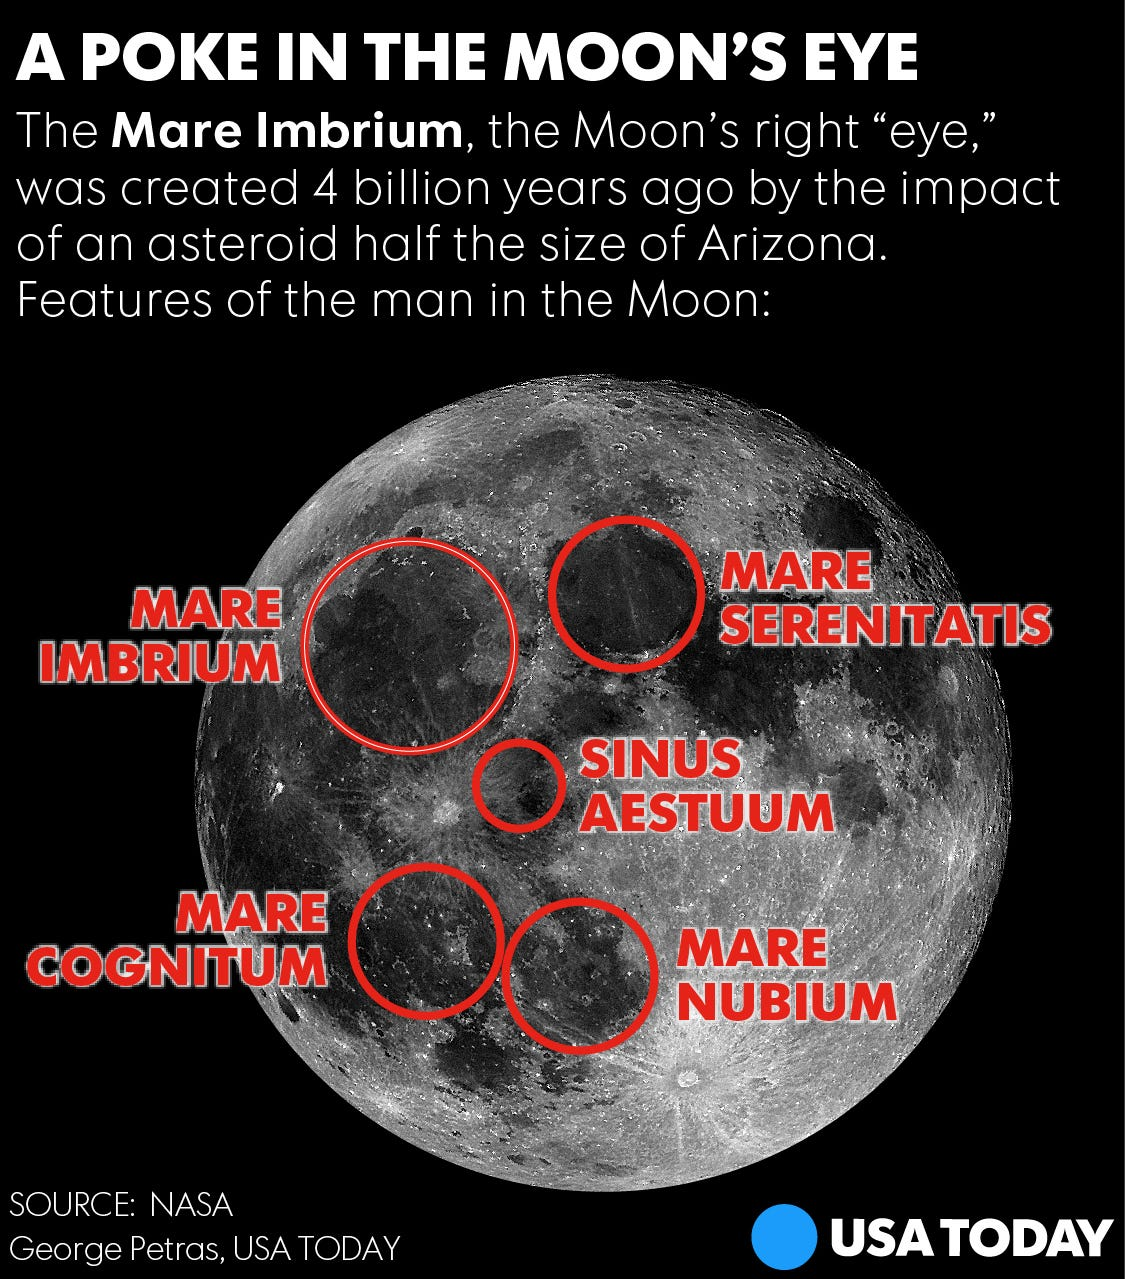 When Will the Moon Rise Tonight? | Calculate Moonrise ...